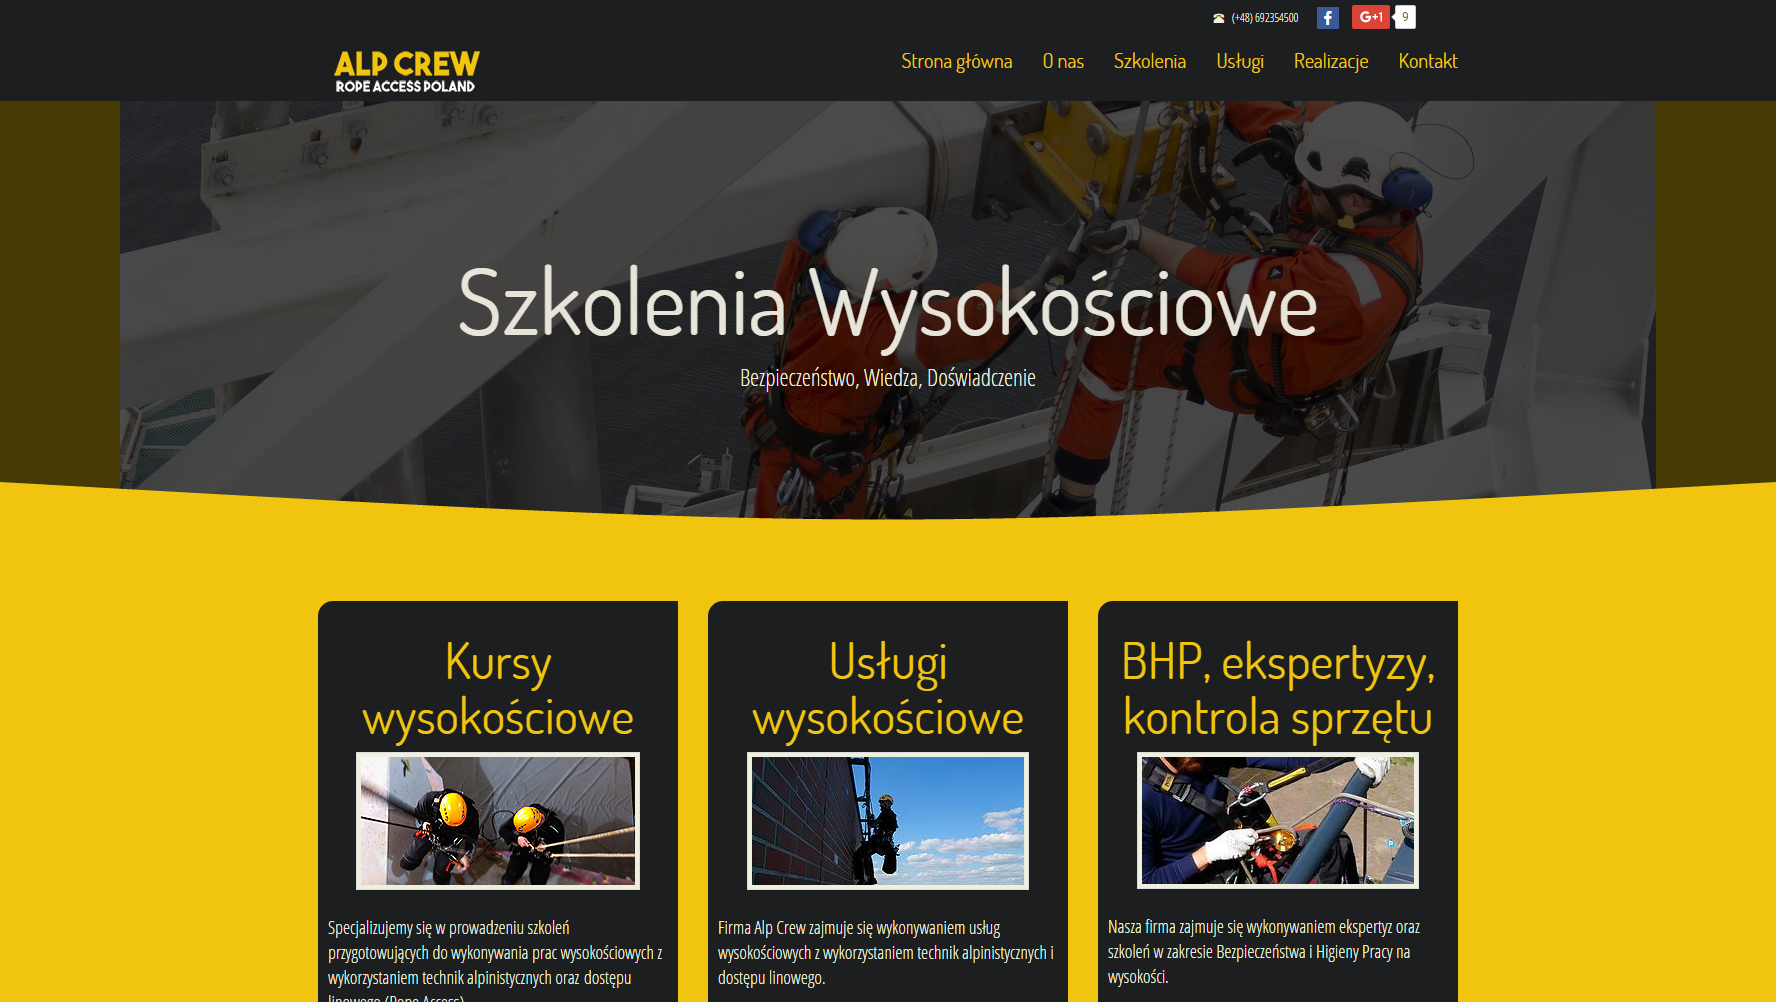 Project AlpCrew.pl